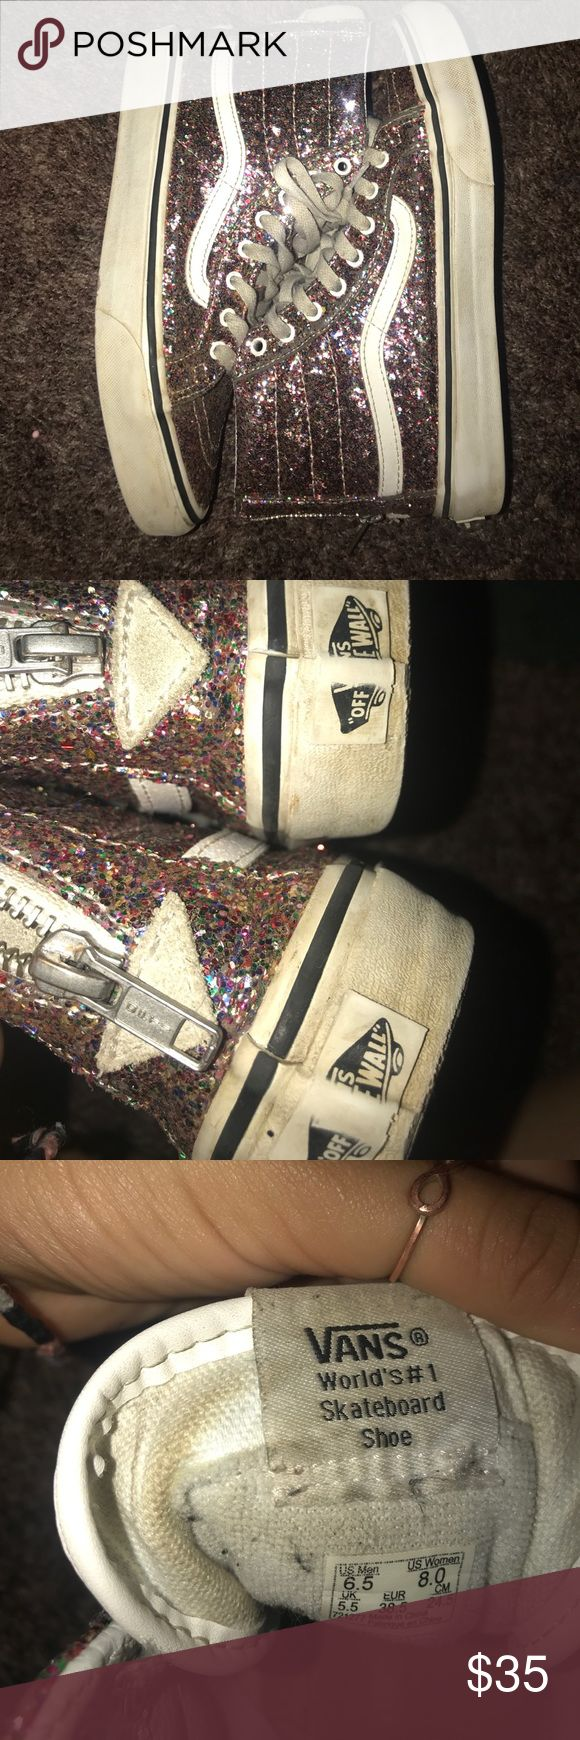 Glitter vans high tops Glitter vans high tops in very good condition only worn 3 times Vans Shoes Sneakers